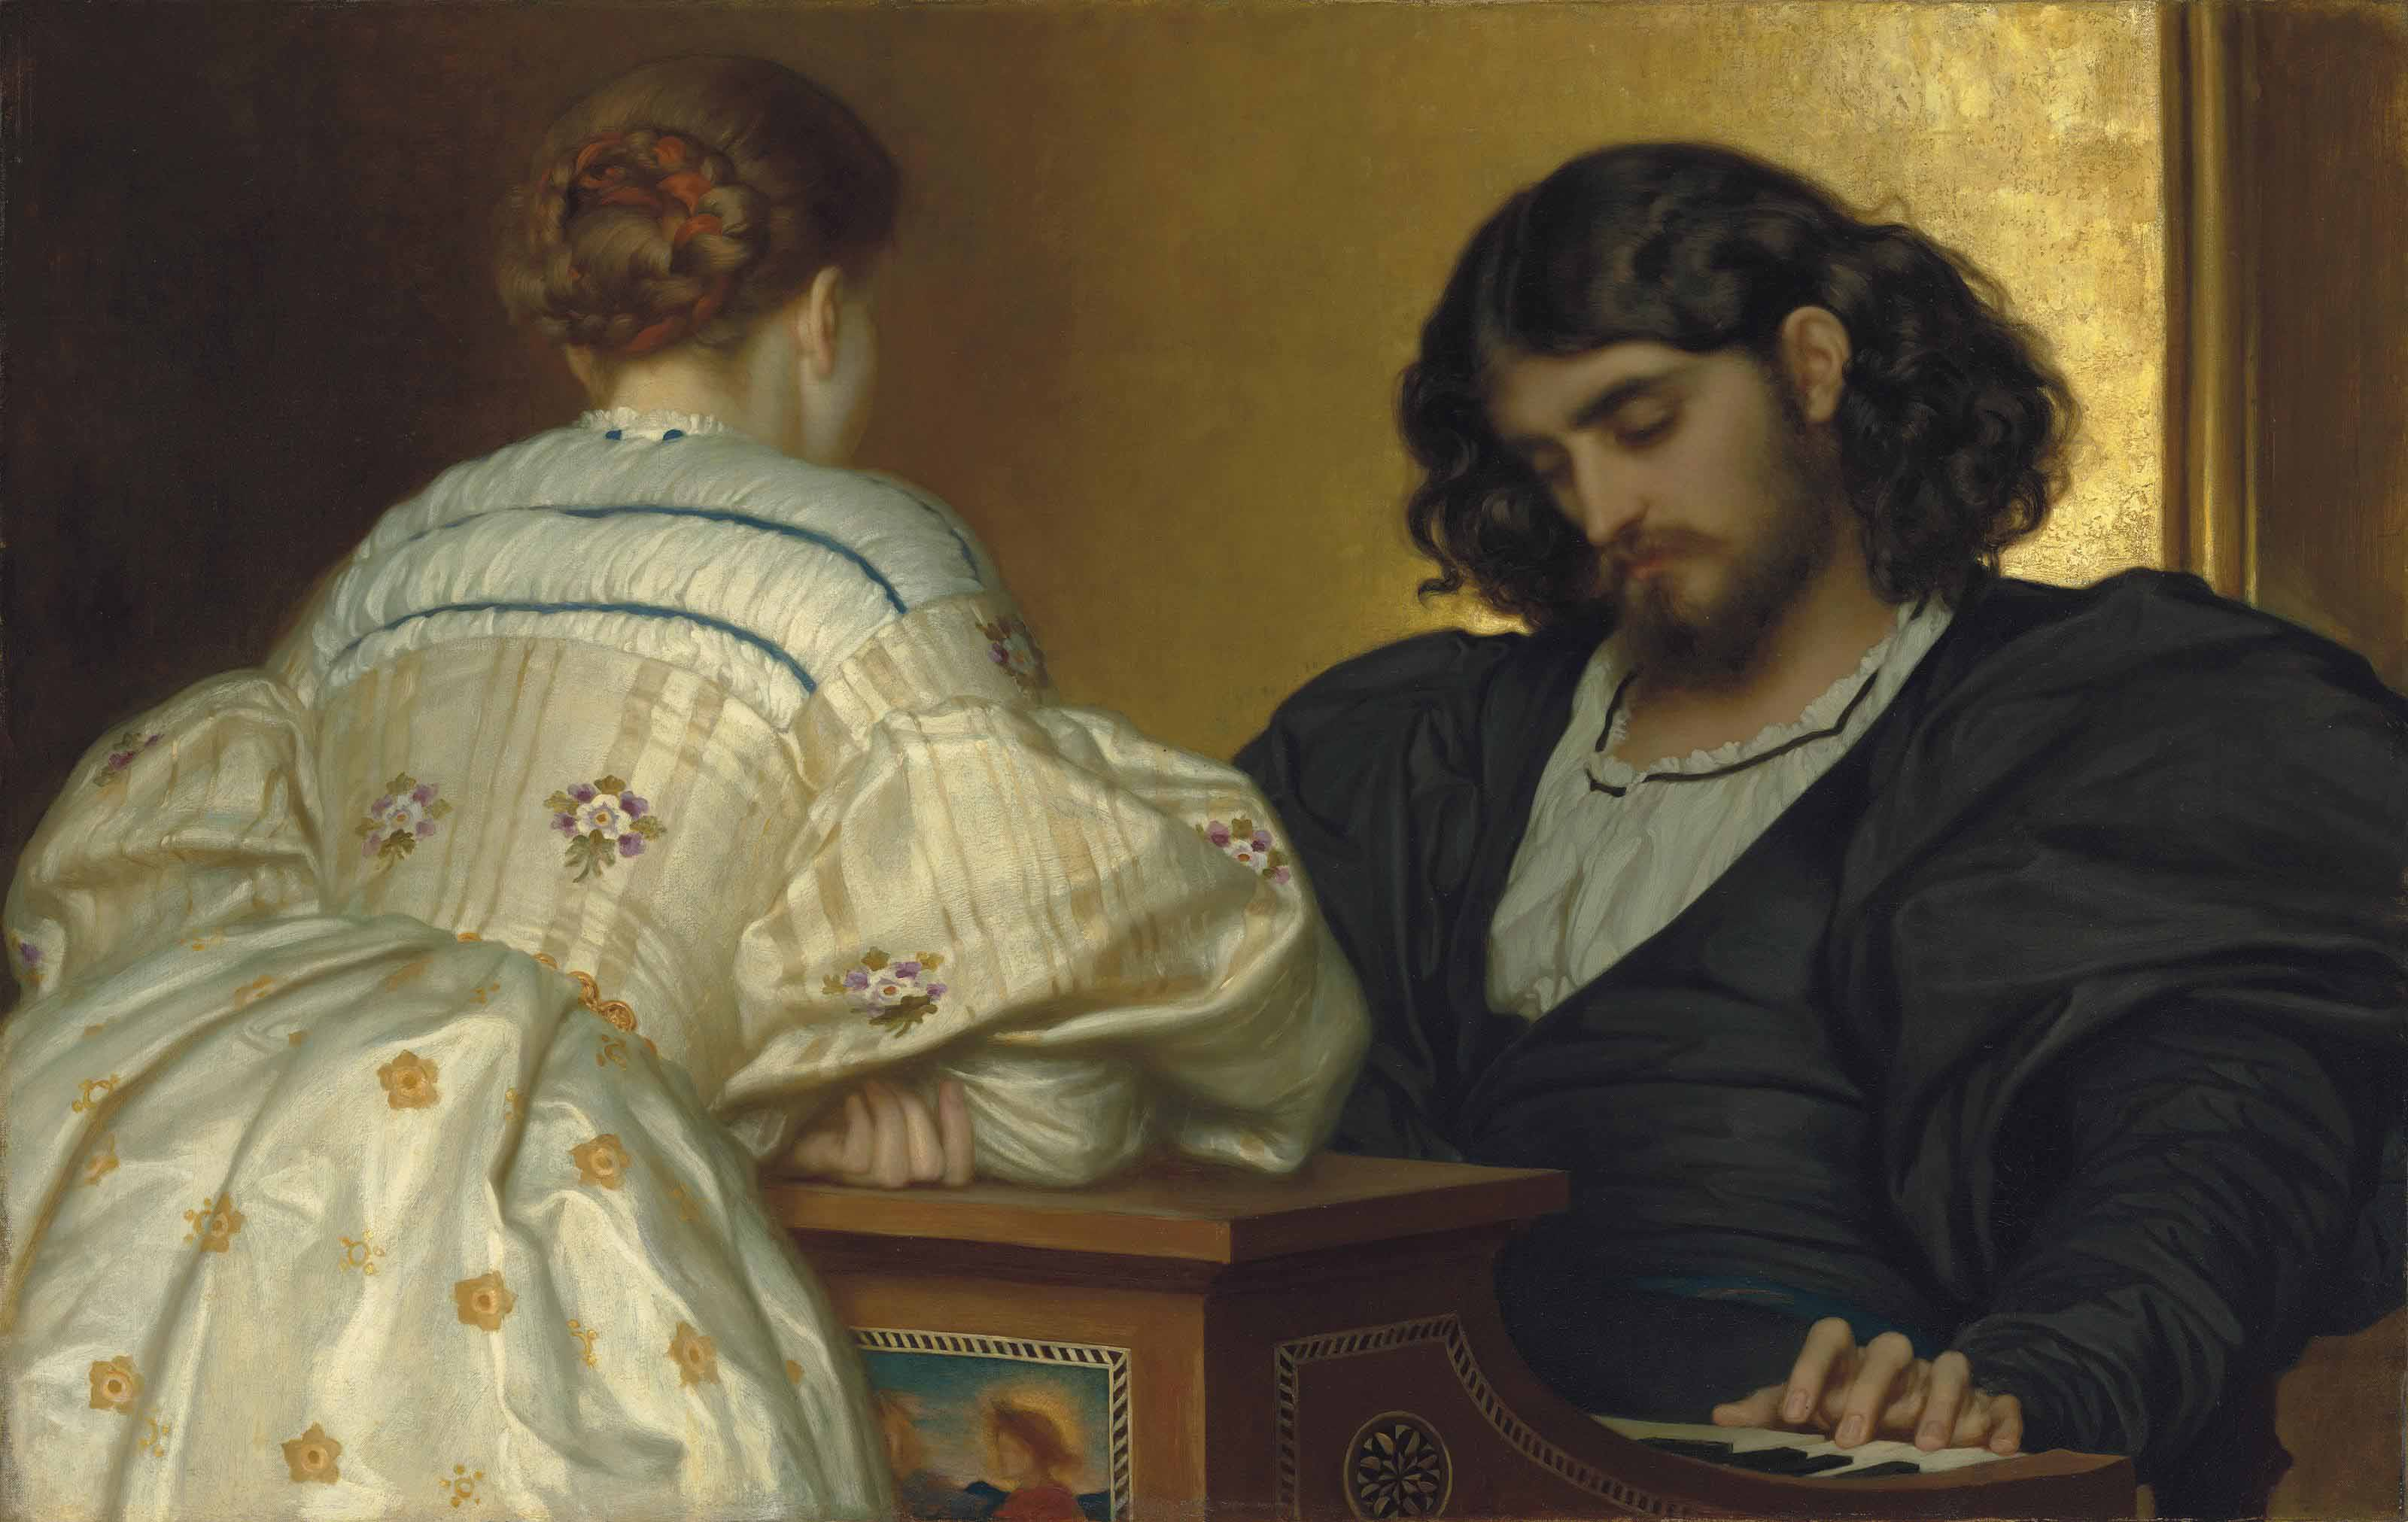 Frederic, Lord Leighton, P.R.A. (1830-1896)